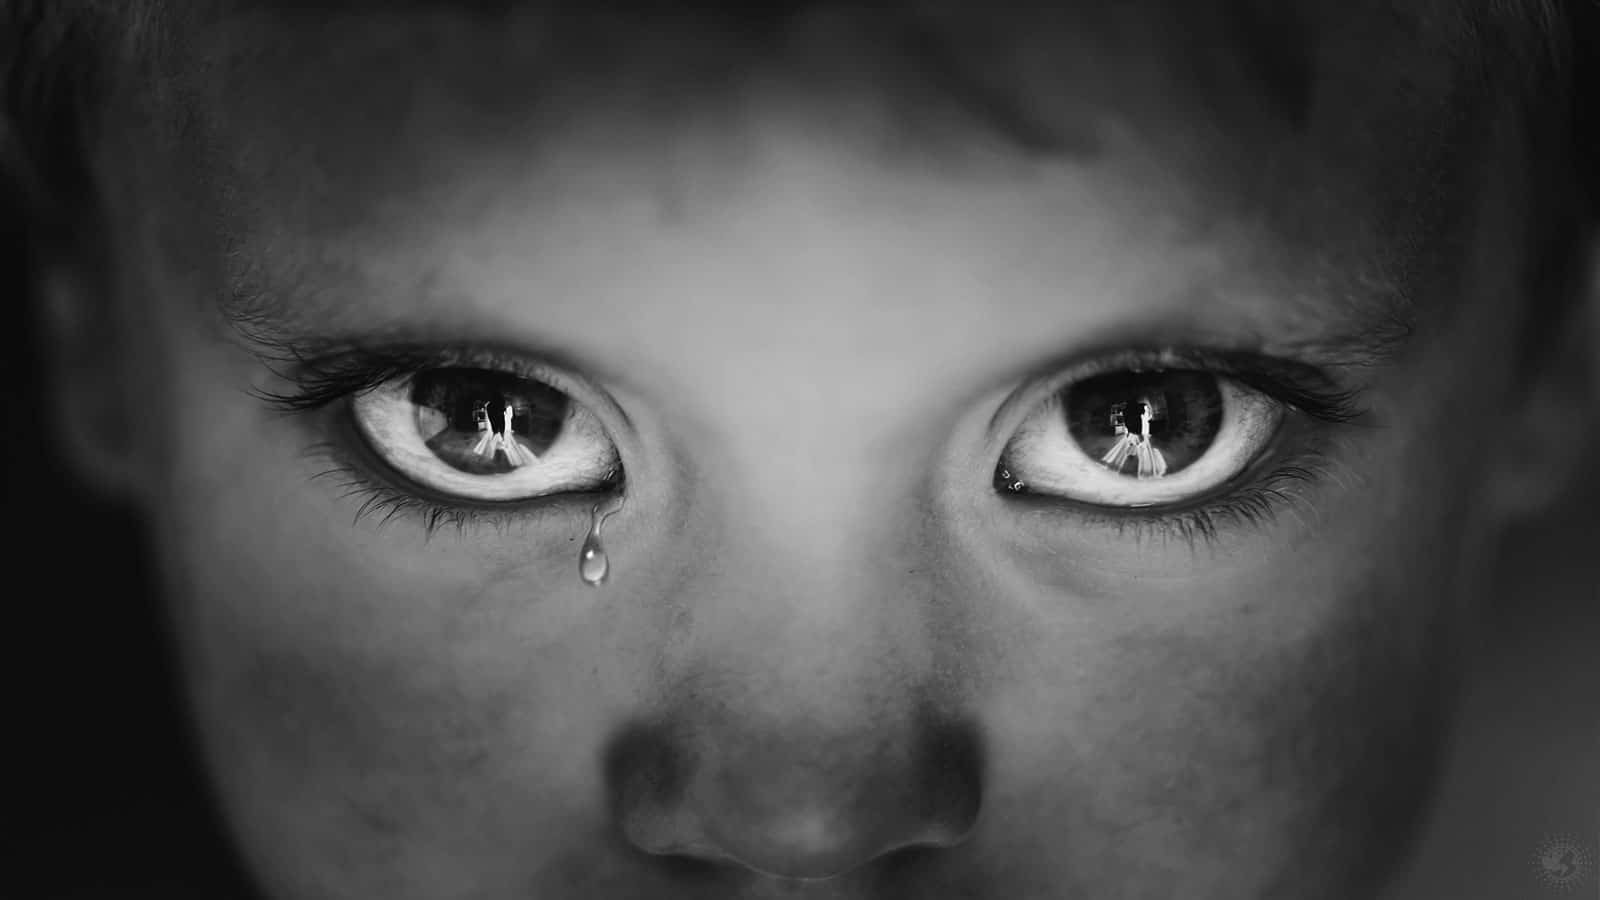 5 Ways to Know the Signs of Child Abuse